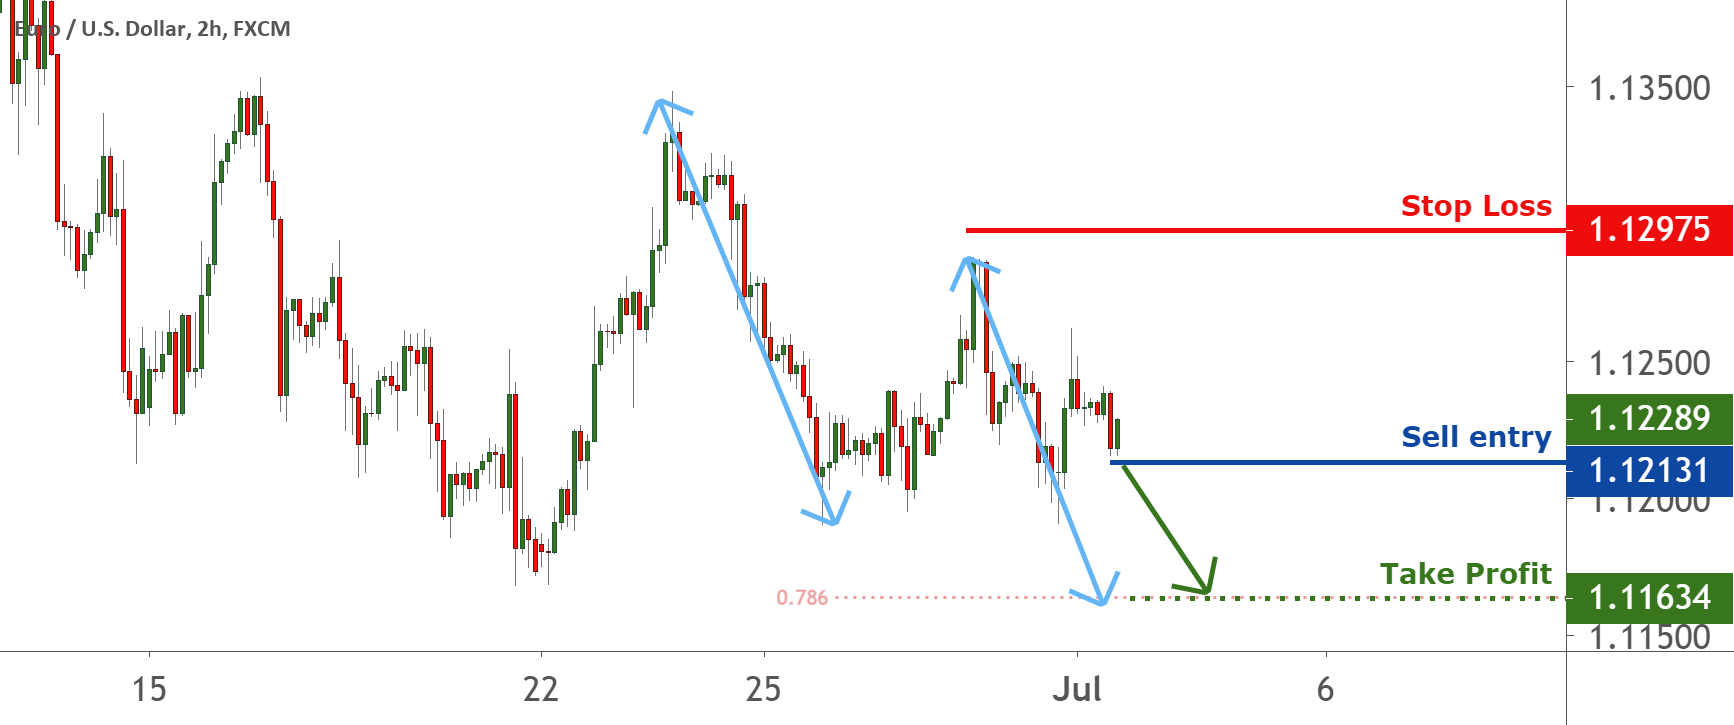 Possible trend shift in EURUSD – going short for FX:EURUSD by FXCM